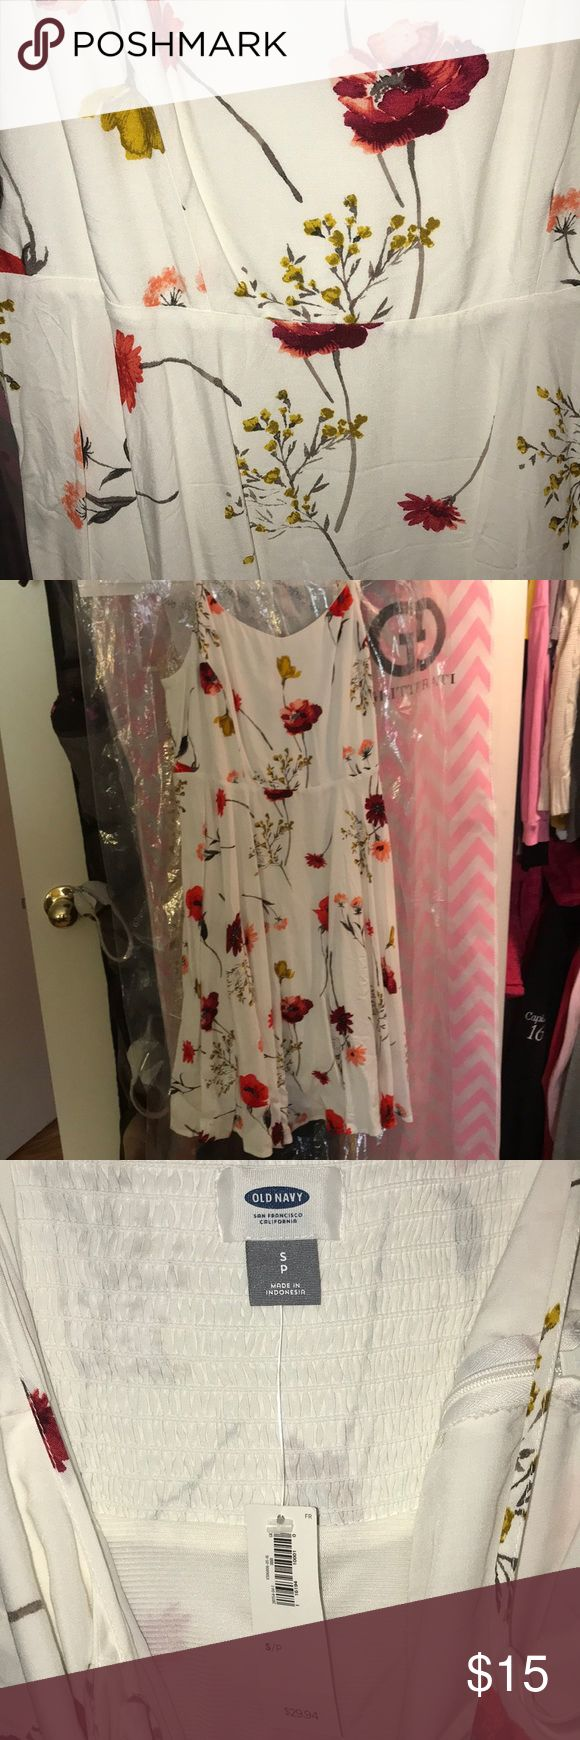 Sundress from Old Navy! Super cute for summer never been worn! Willing to negotiate on price! Old Navy Dresses Midi